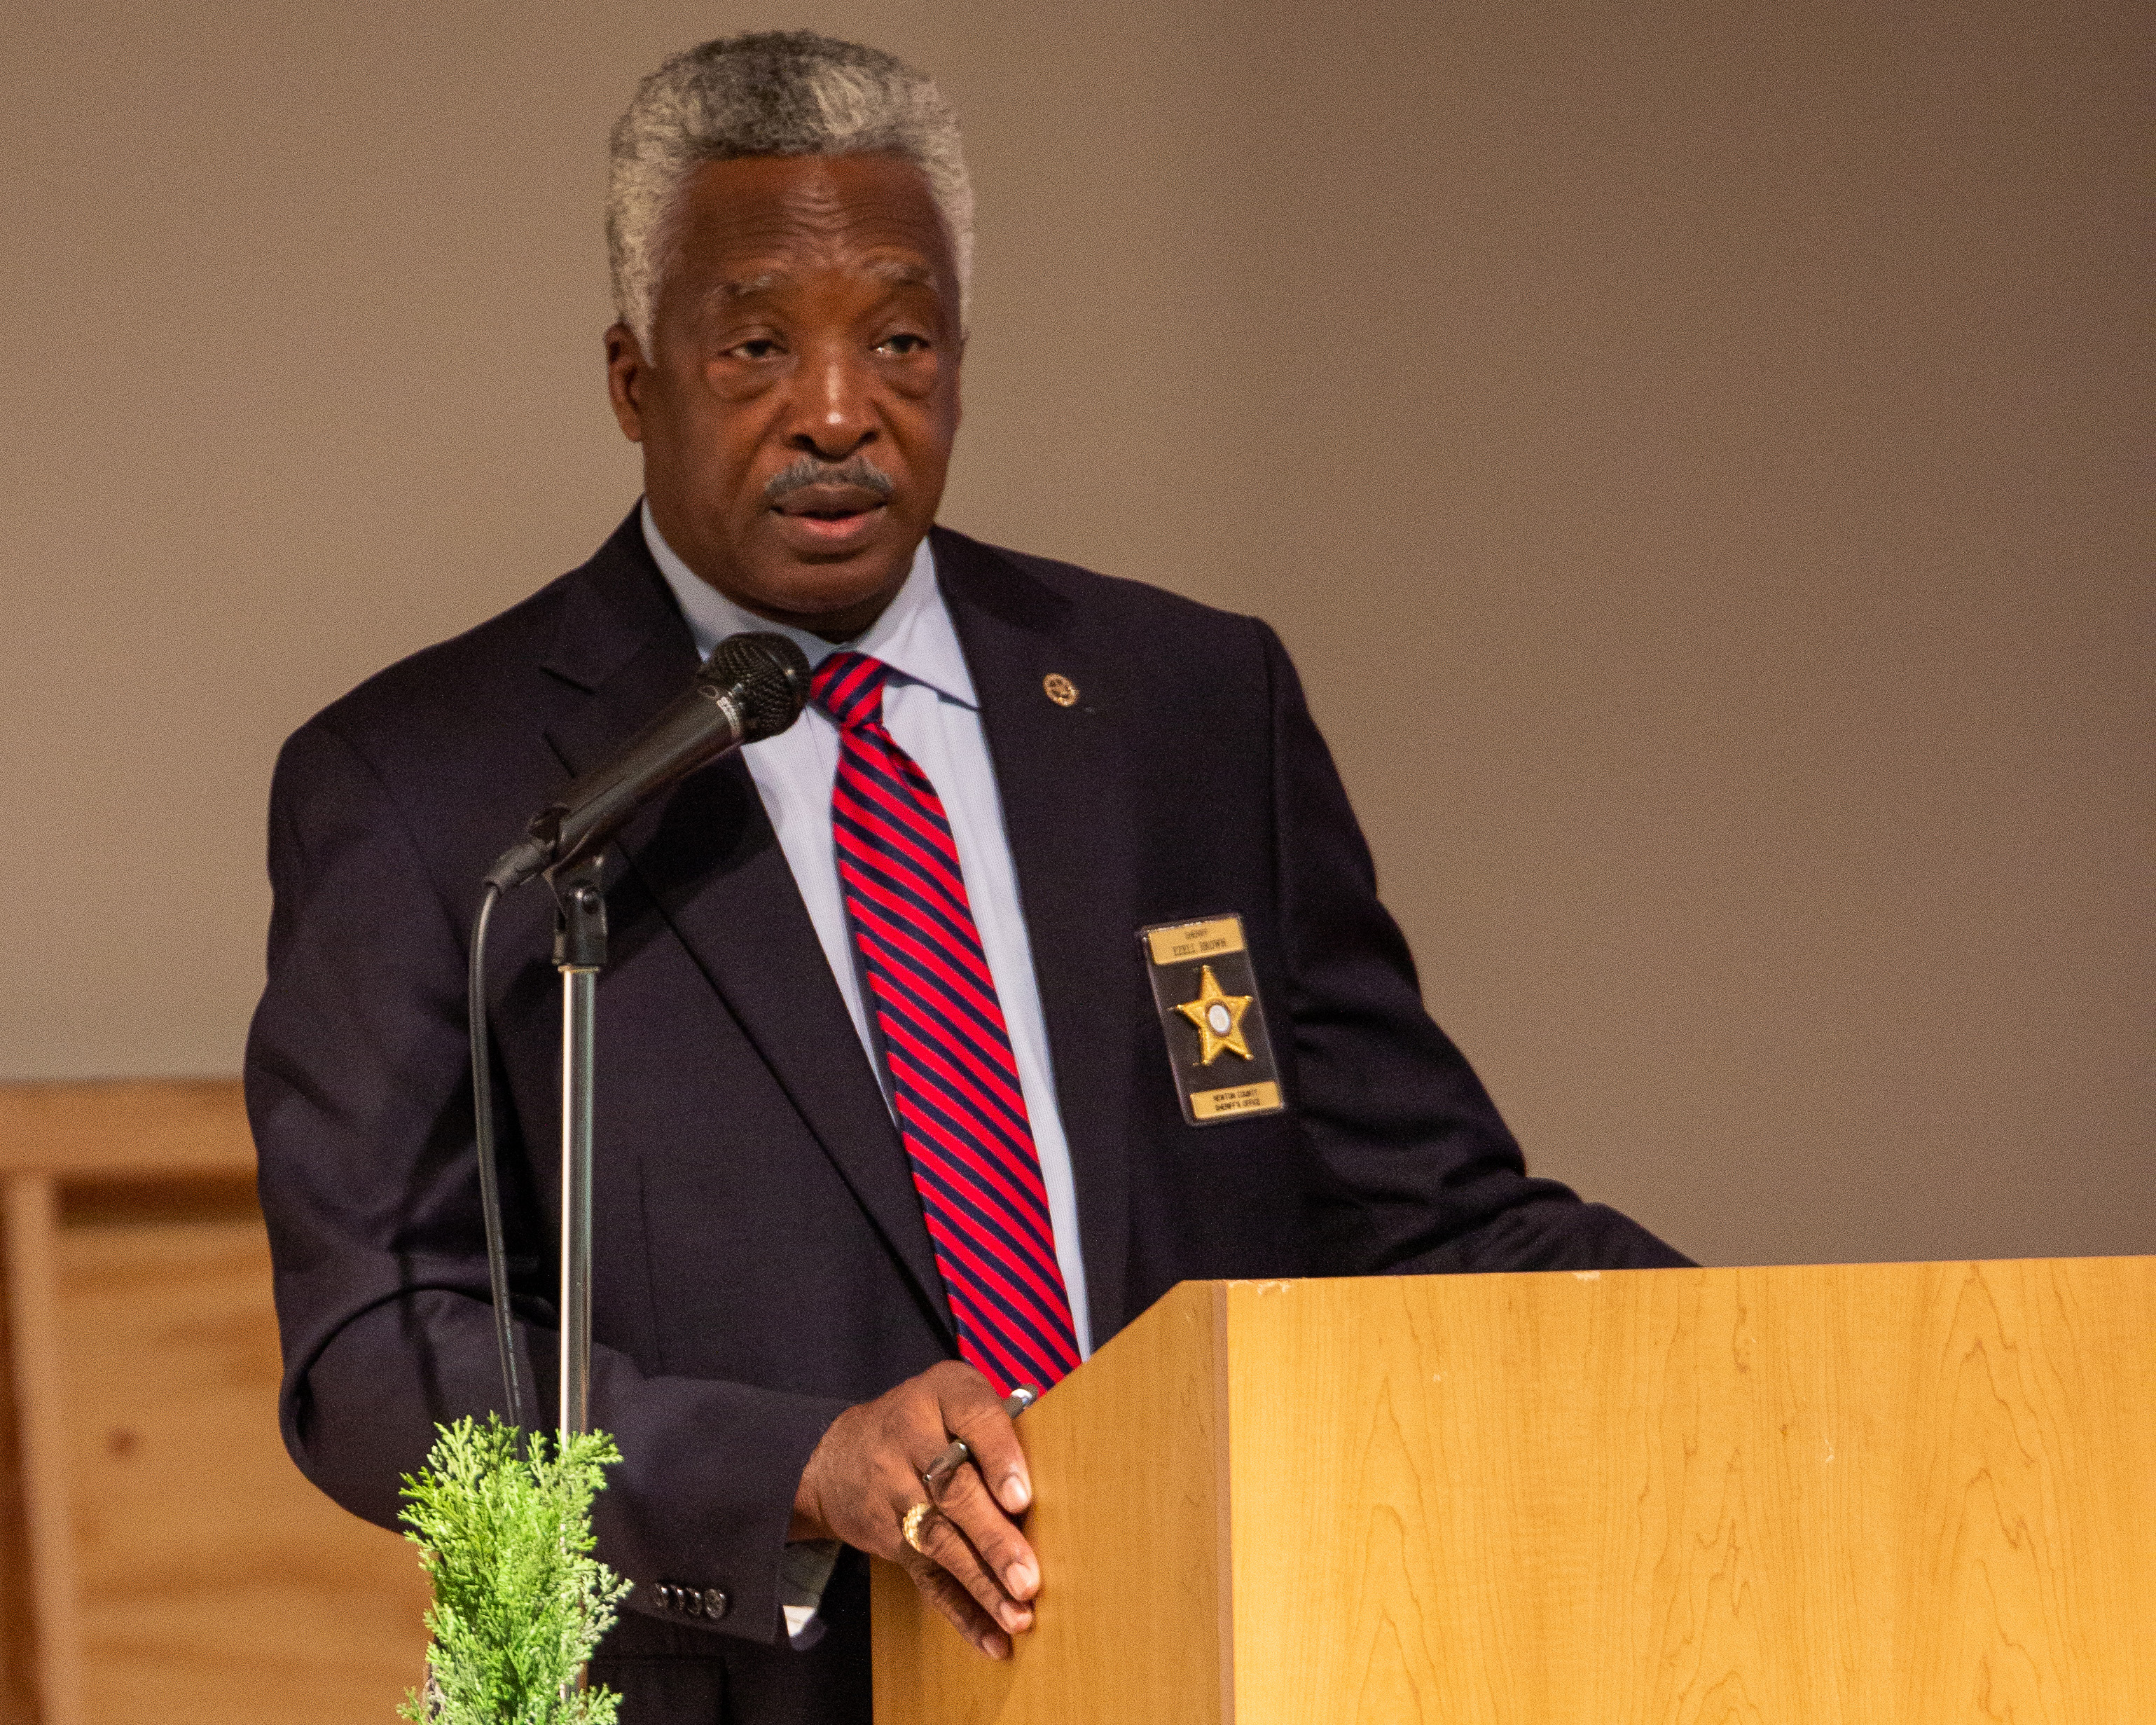 Image of Sheriff Speaks at Leadership Conference